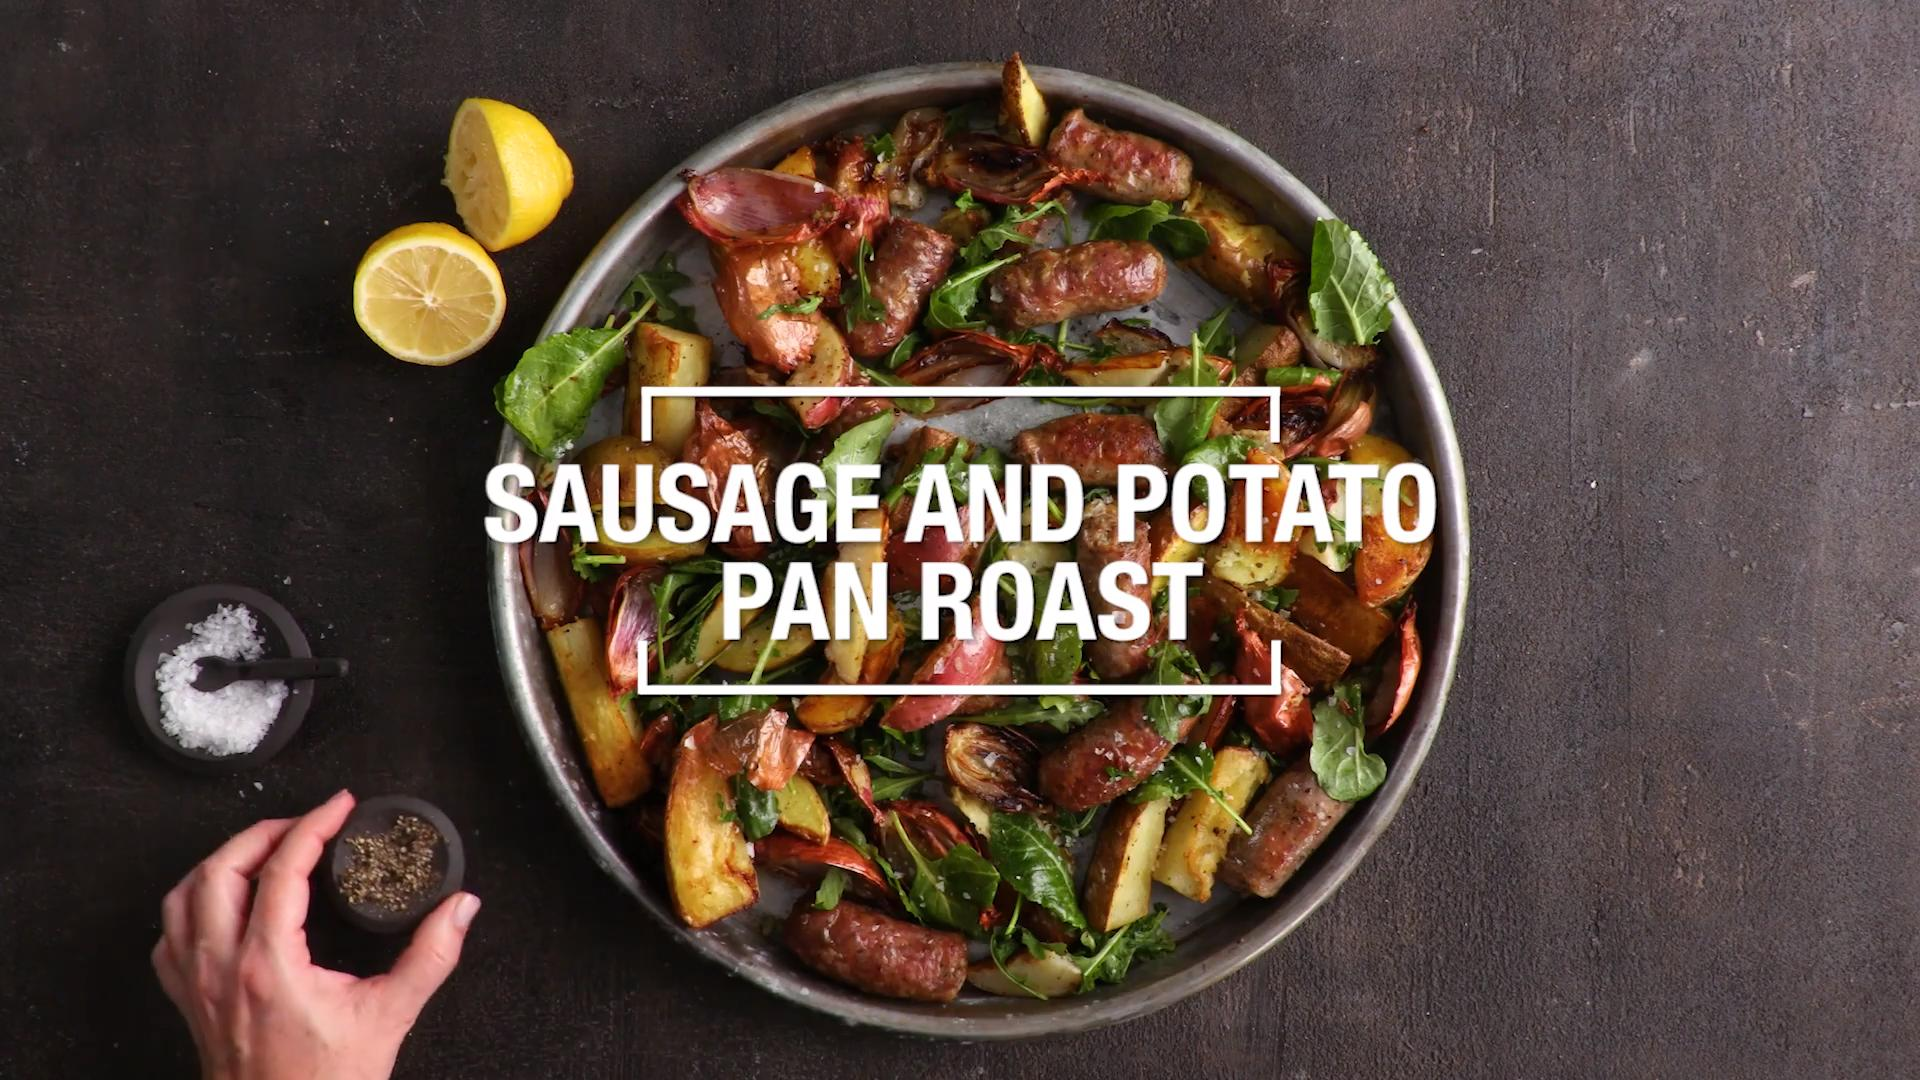 Sausage and Potato Pan Roast